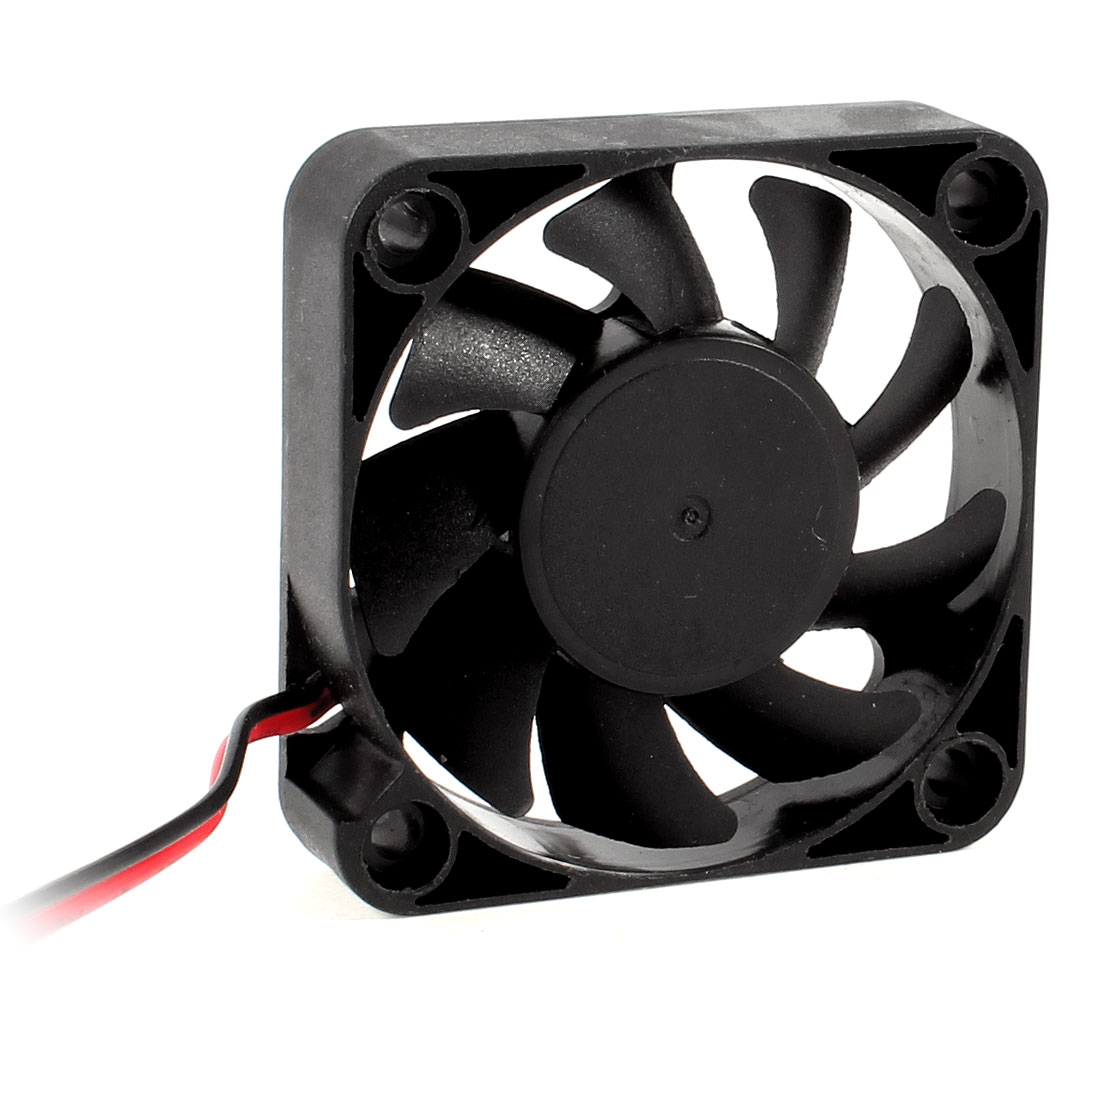 50mm 12V 4Pin Sleeve Bearing Cooling Fan for PC Computer Case CPU Cooler